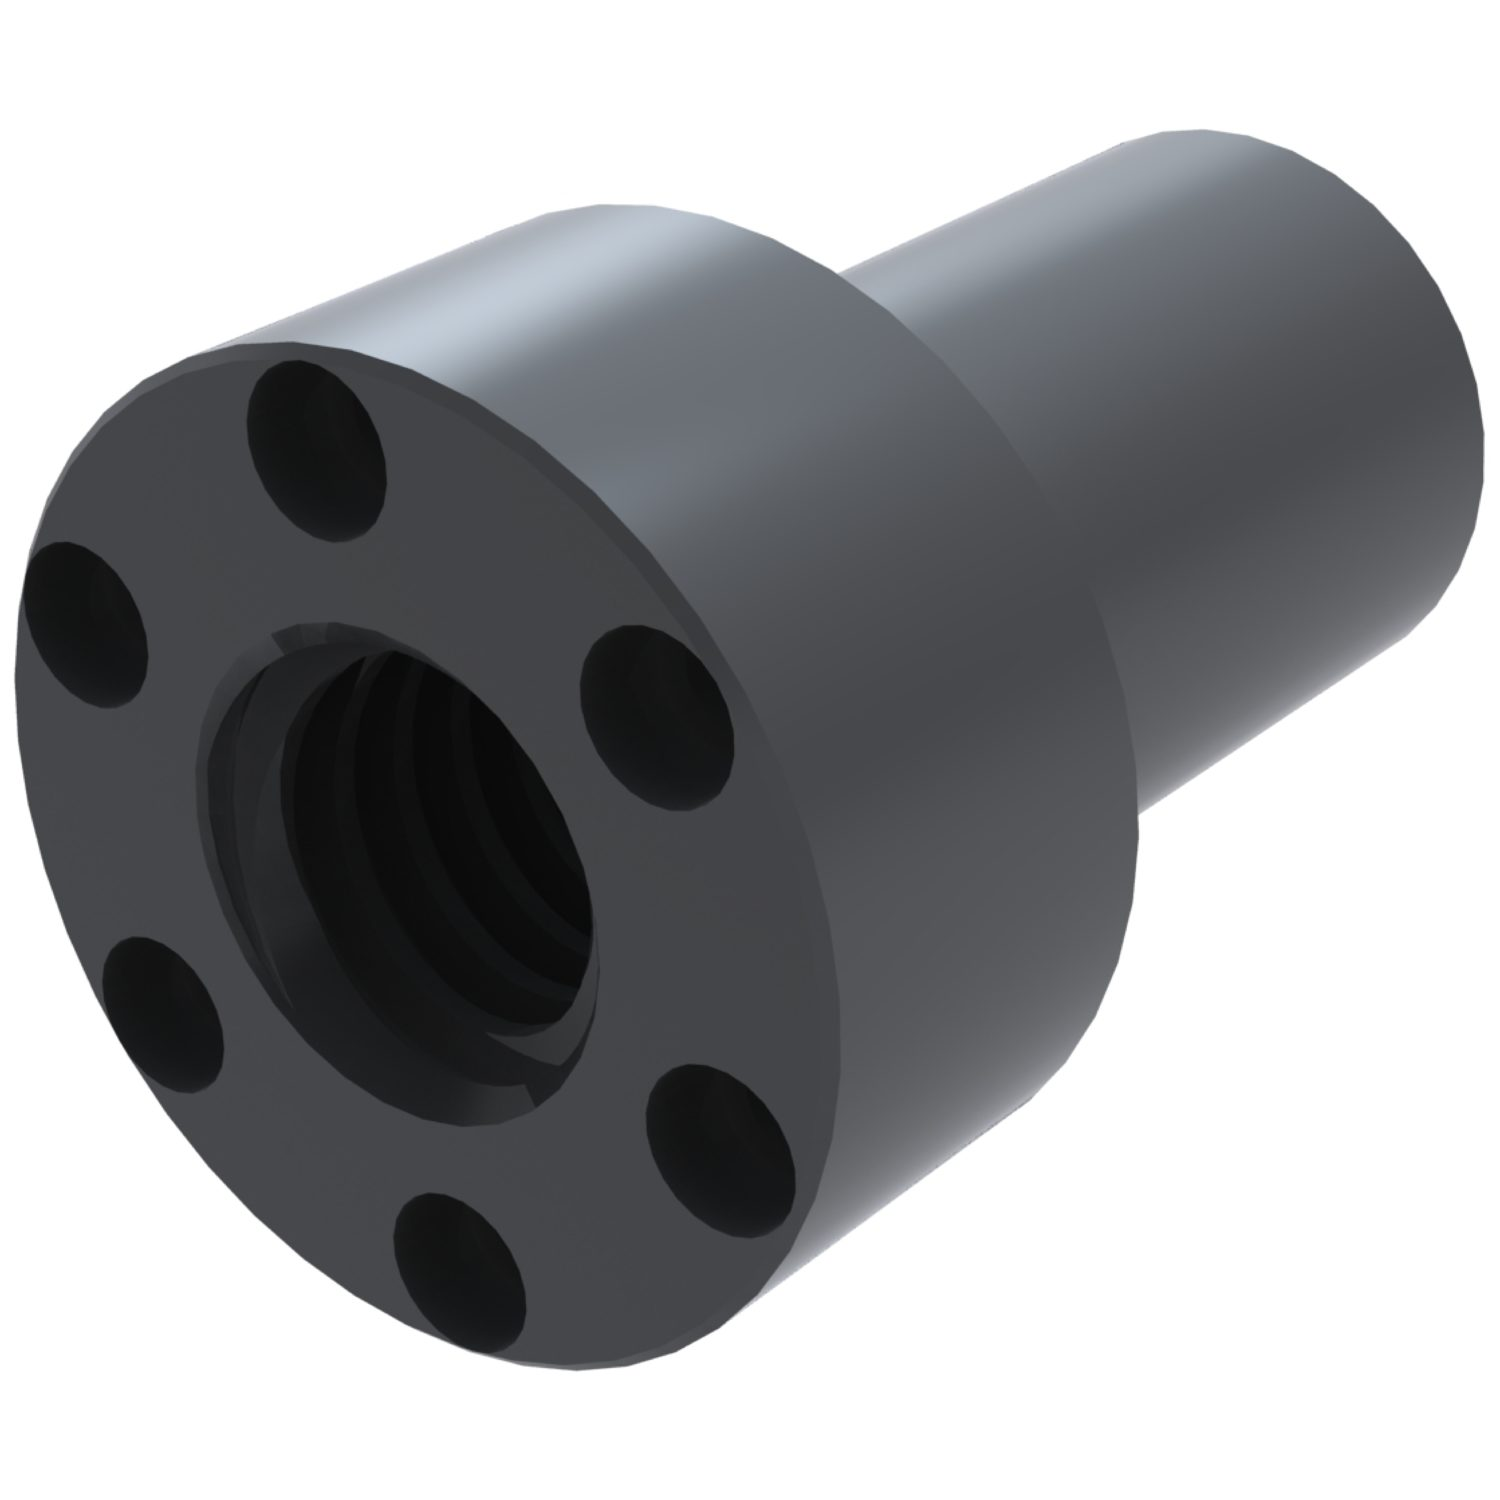 Flanged Self-Lubricating Plastic Nut Self lubricating flanged nut for trapezoidal thread.